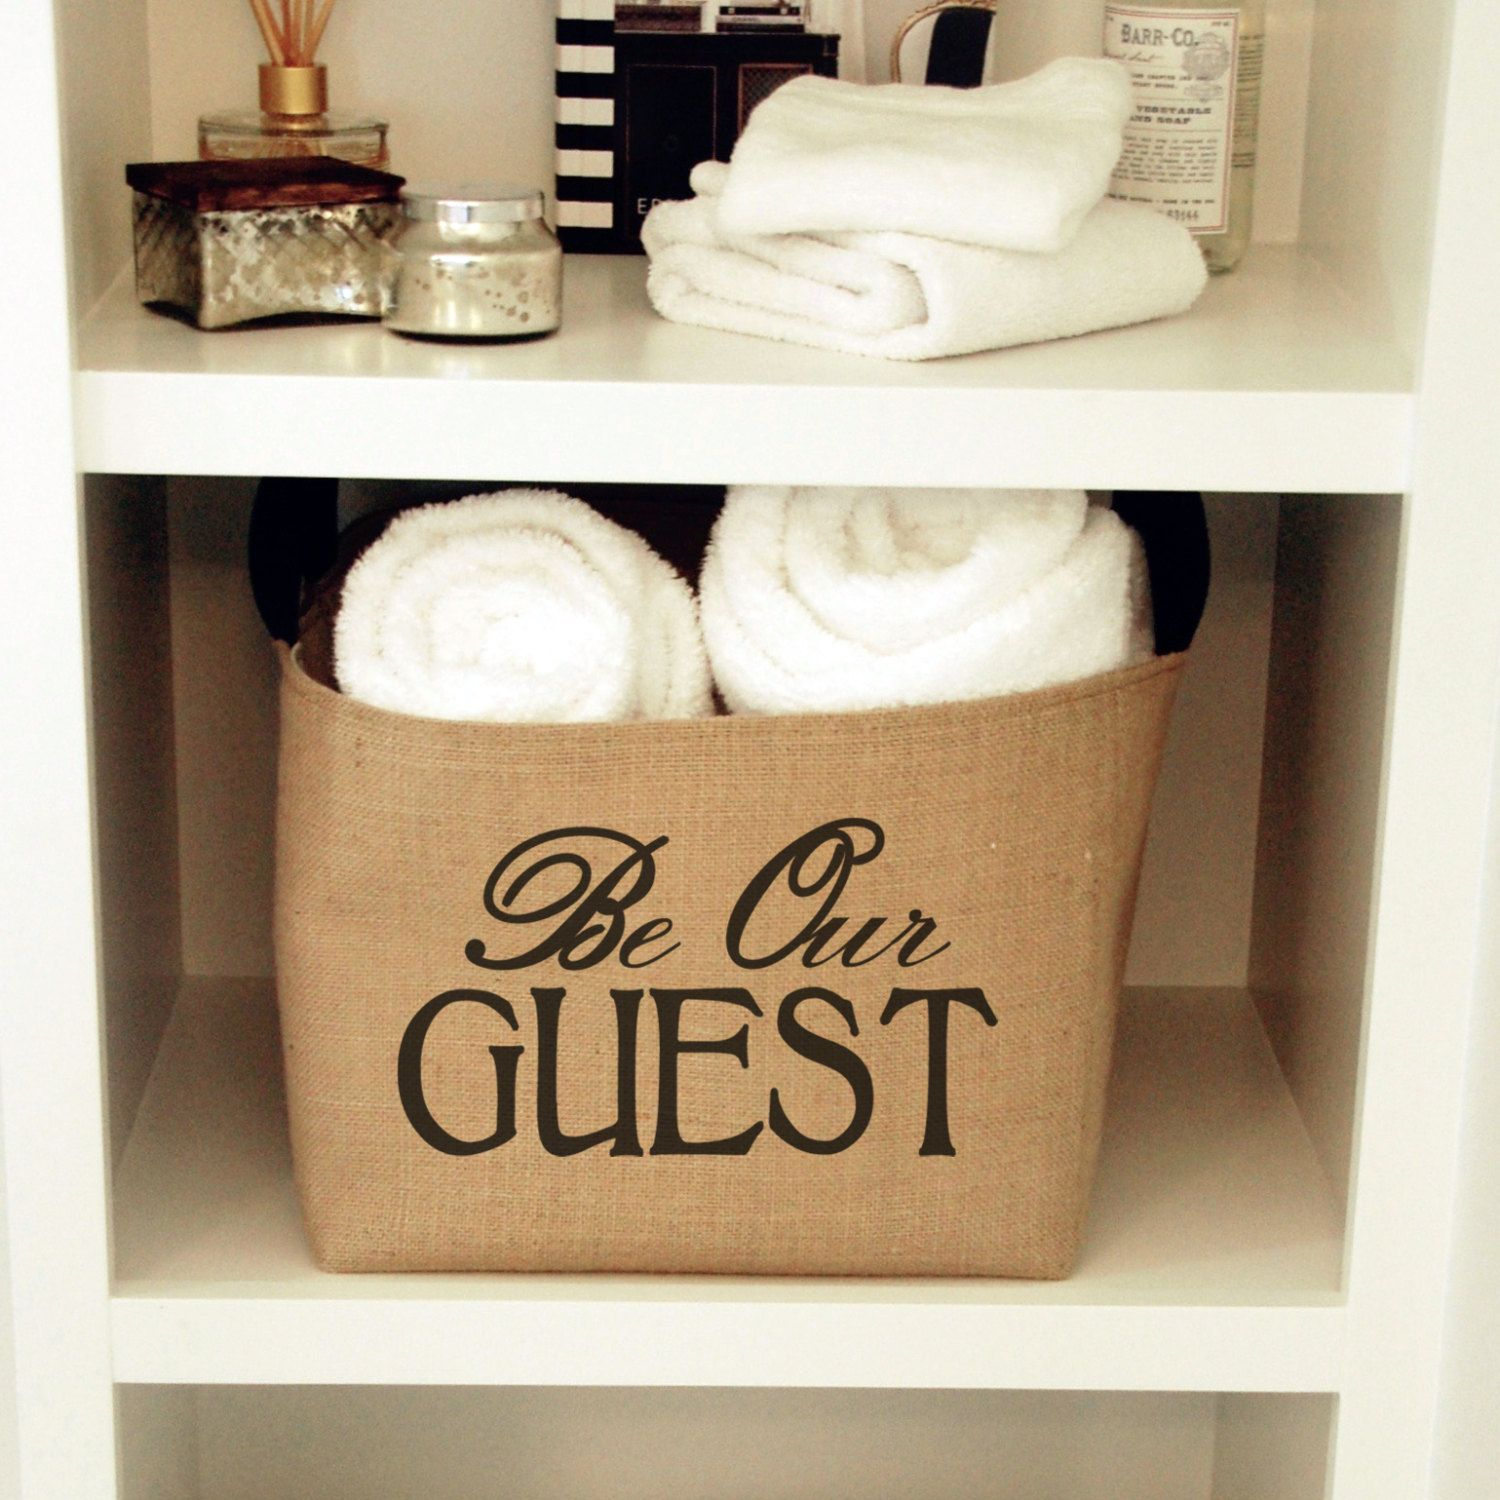 Burlap bathroom ideas - Burlap Bathroom Decor